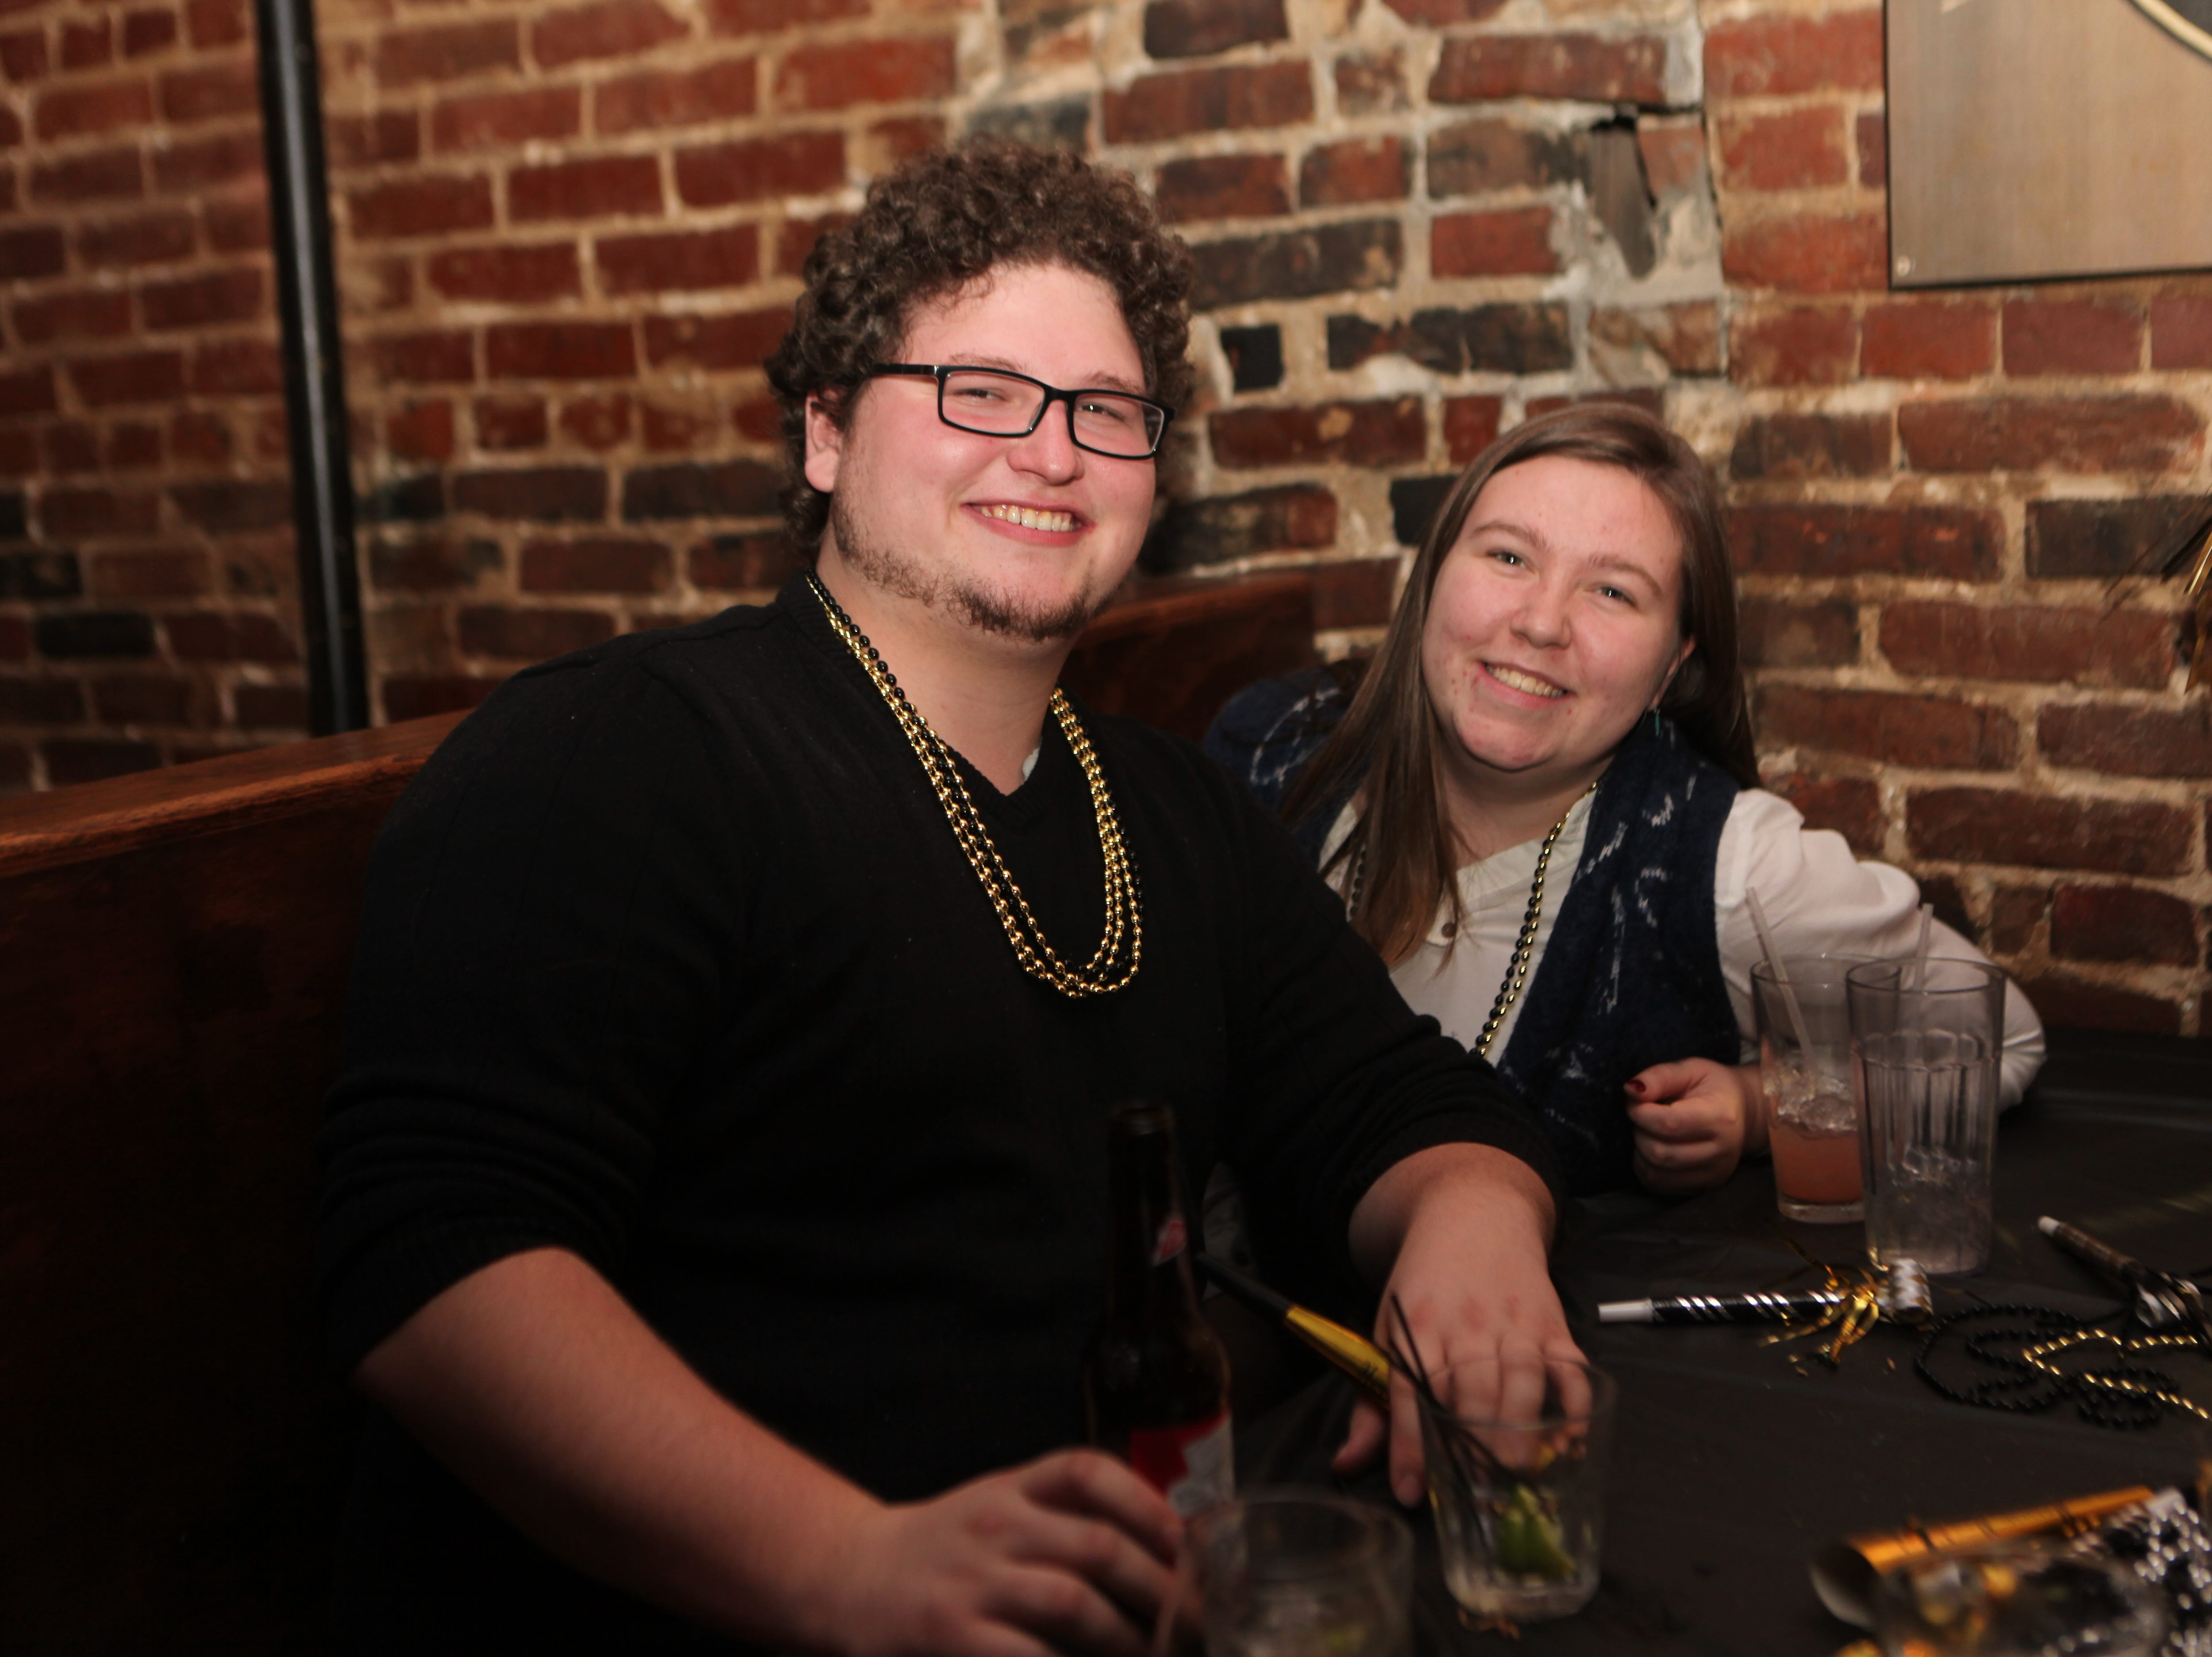 People gather for the Tap Room's New Year's Eve Party, Dec. 31, 2018, in Clarksville, Tenn.